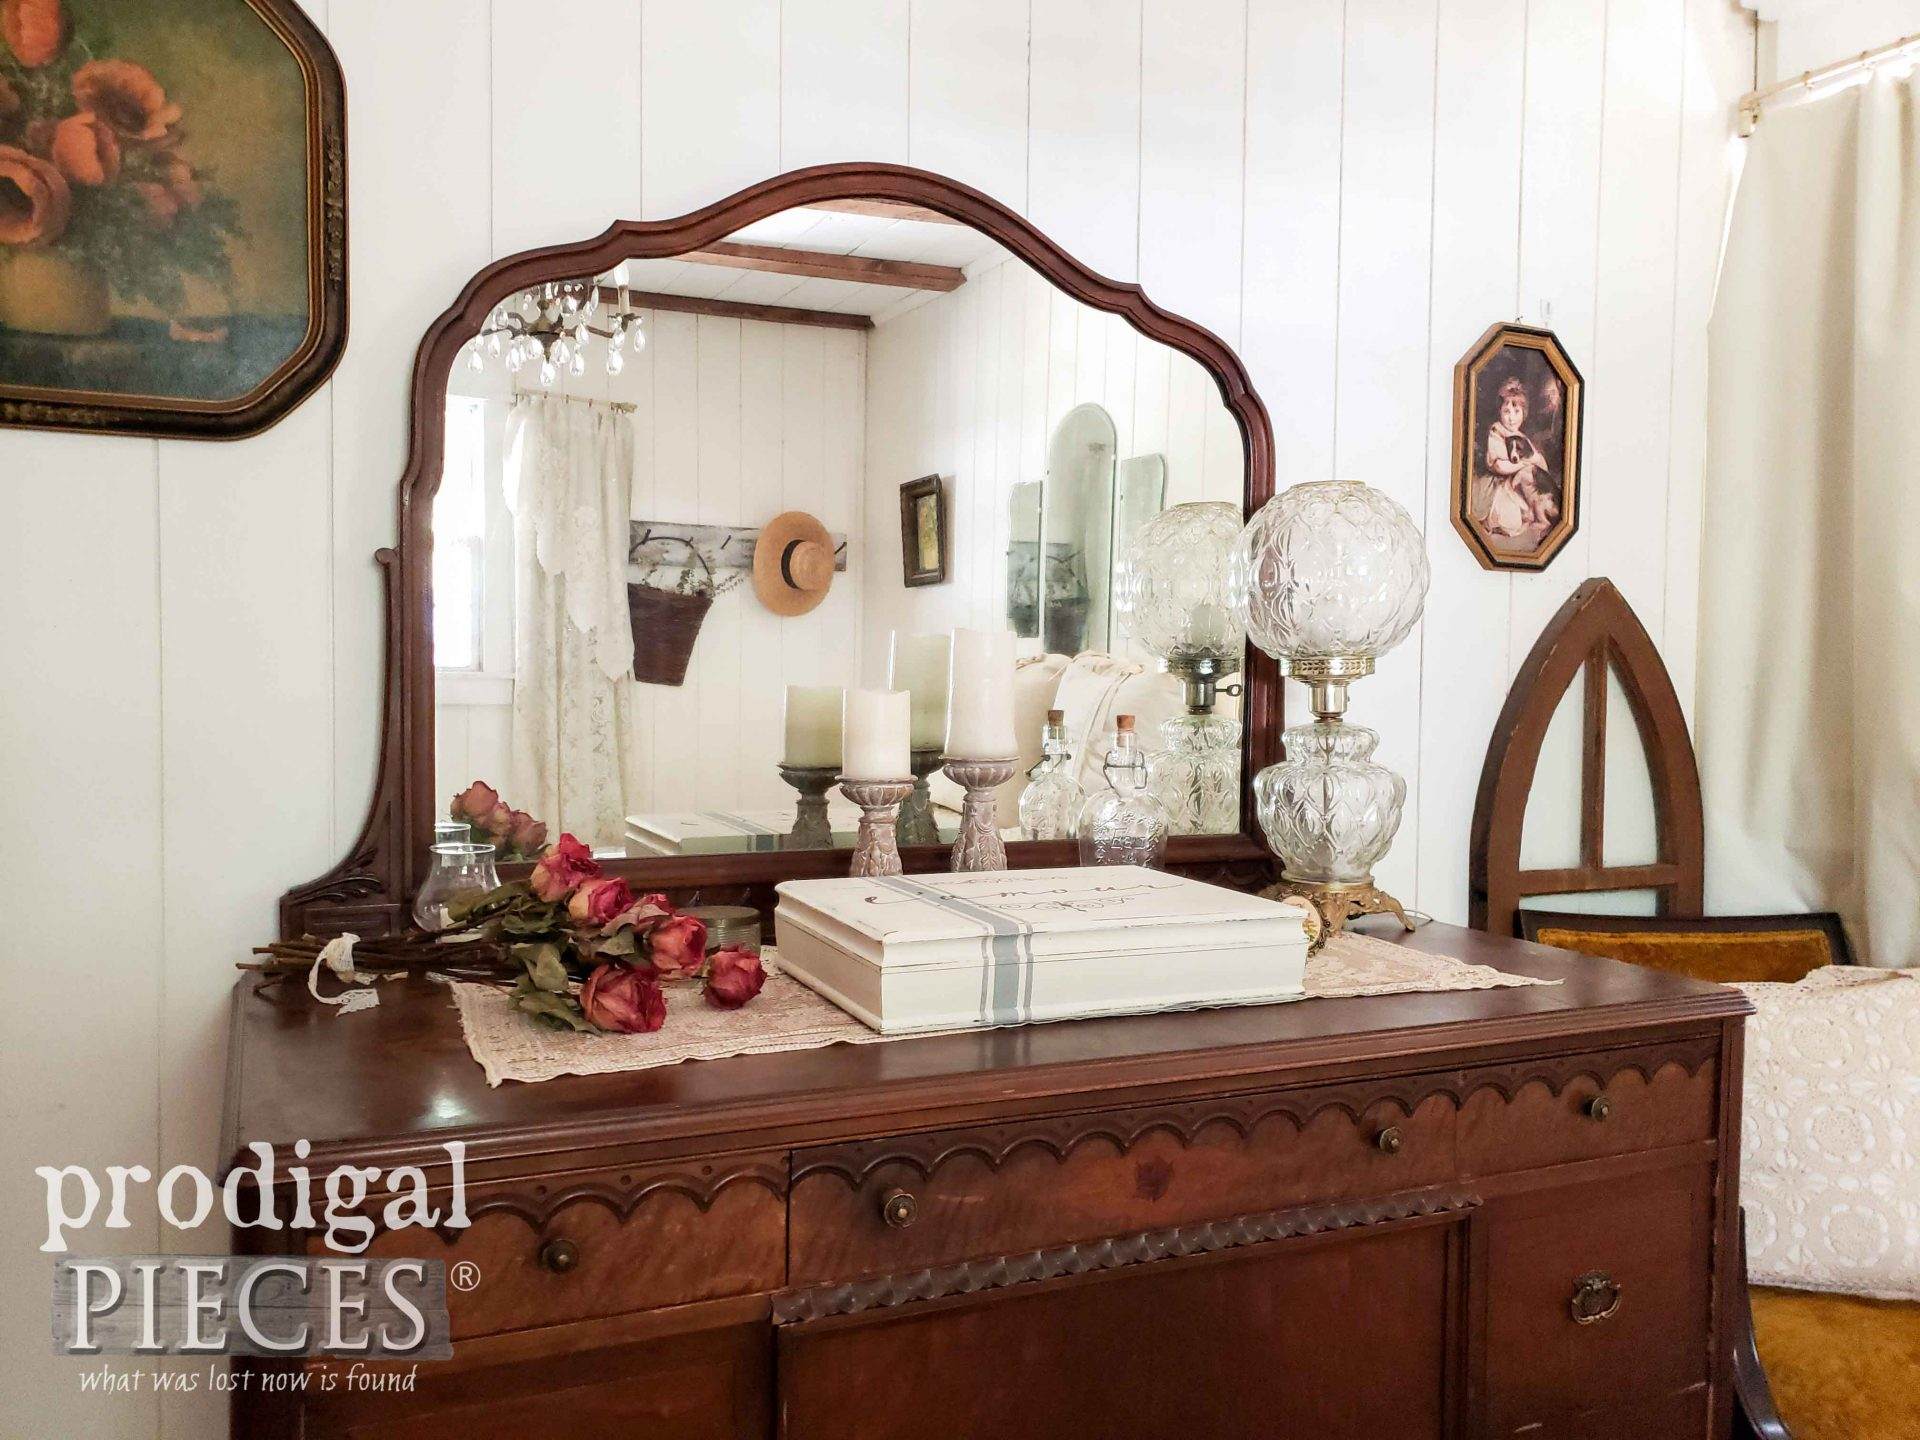 Farmhouse Bedroom with Antique Dresser and DIY Jewelry Box by Larissa of Prodigal Pieces | prodigalpieces.com #prodigalpieces #diy #farmhouse #bedroom #home #homedecor